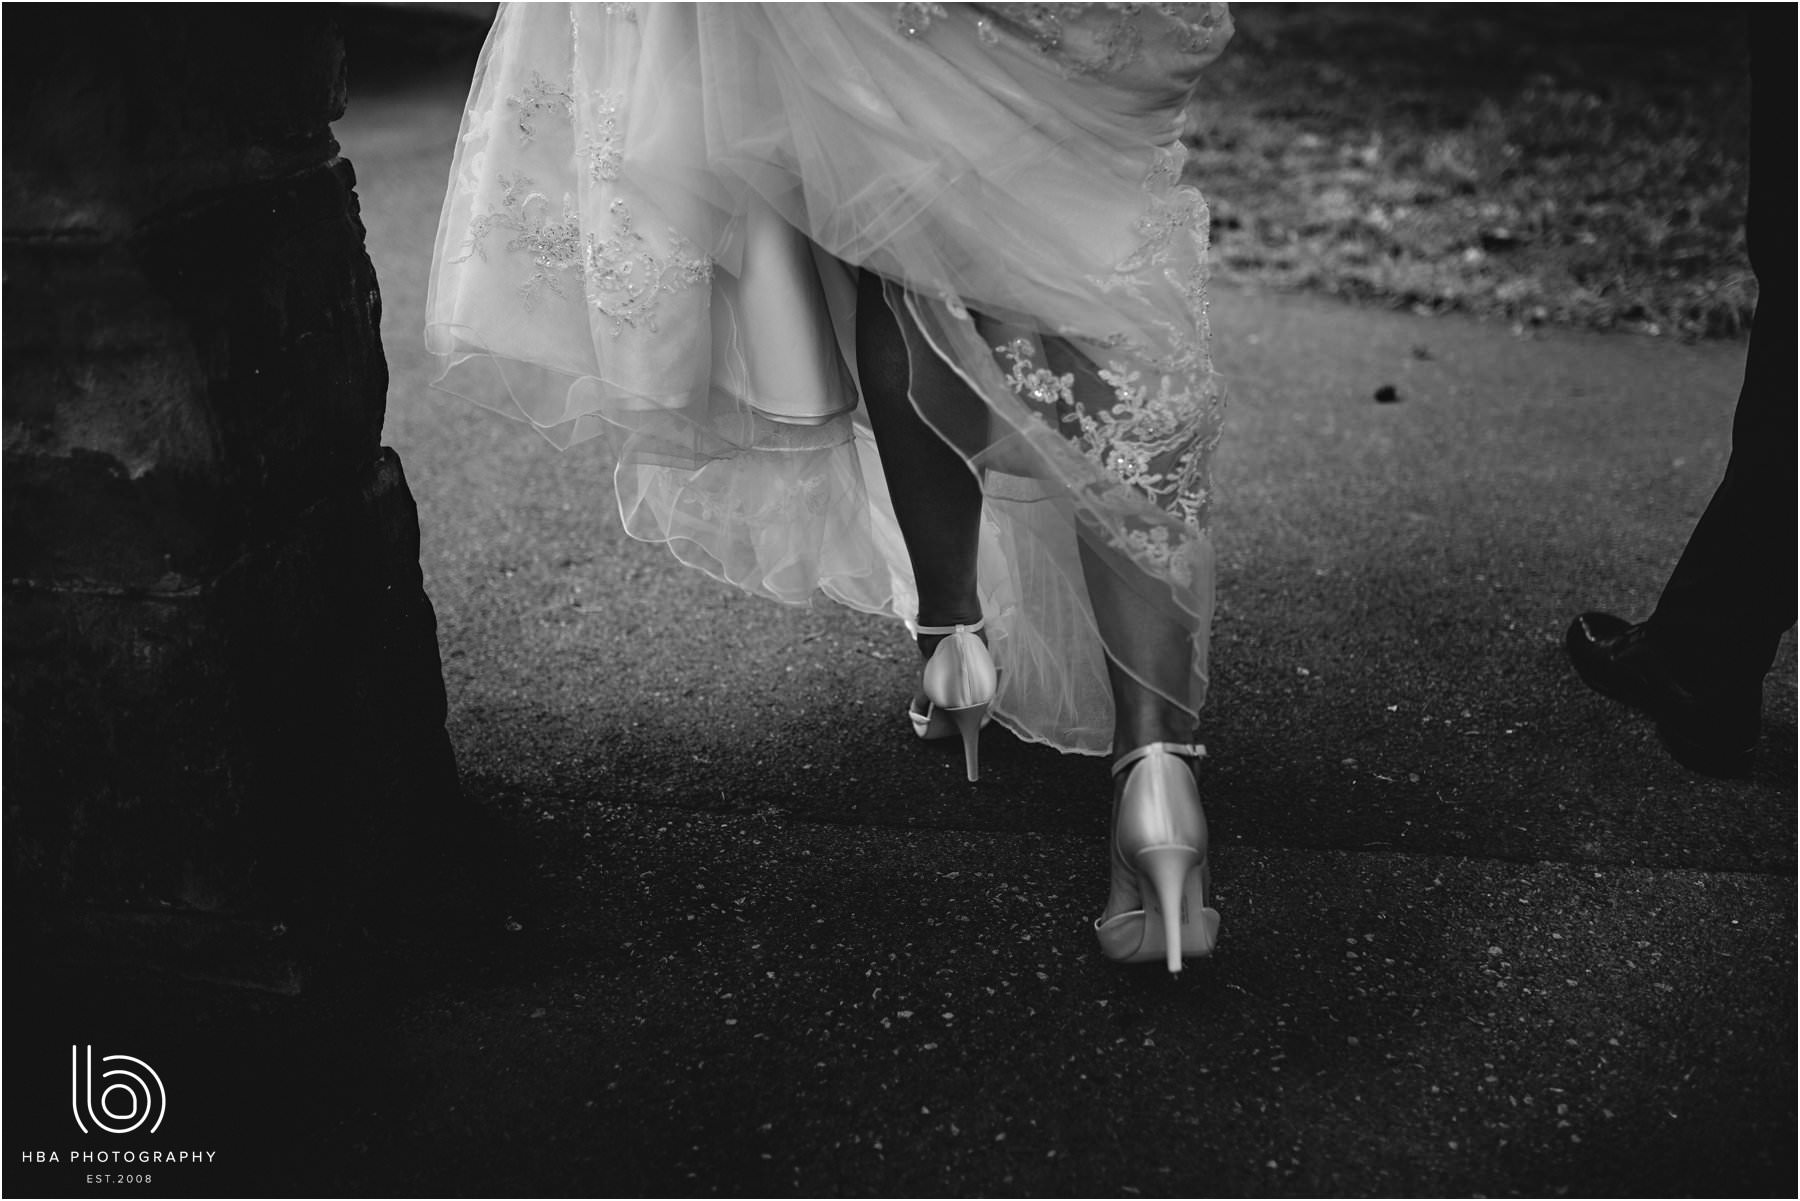 the bride's shoes as she walks along